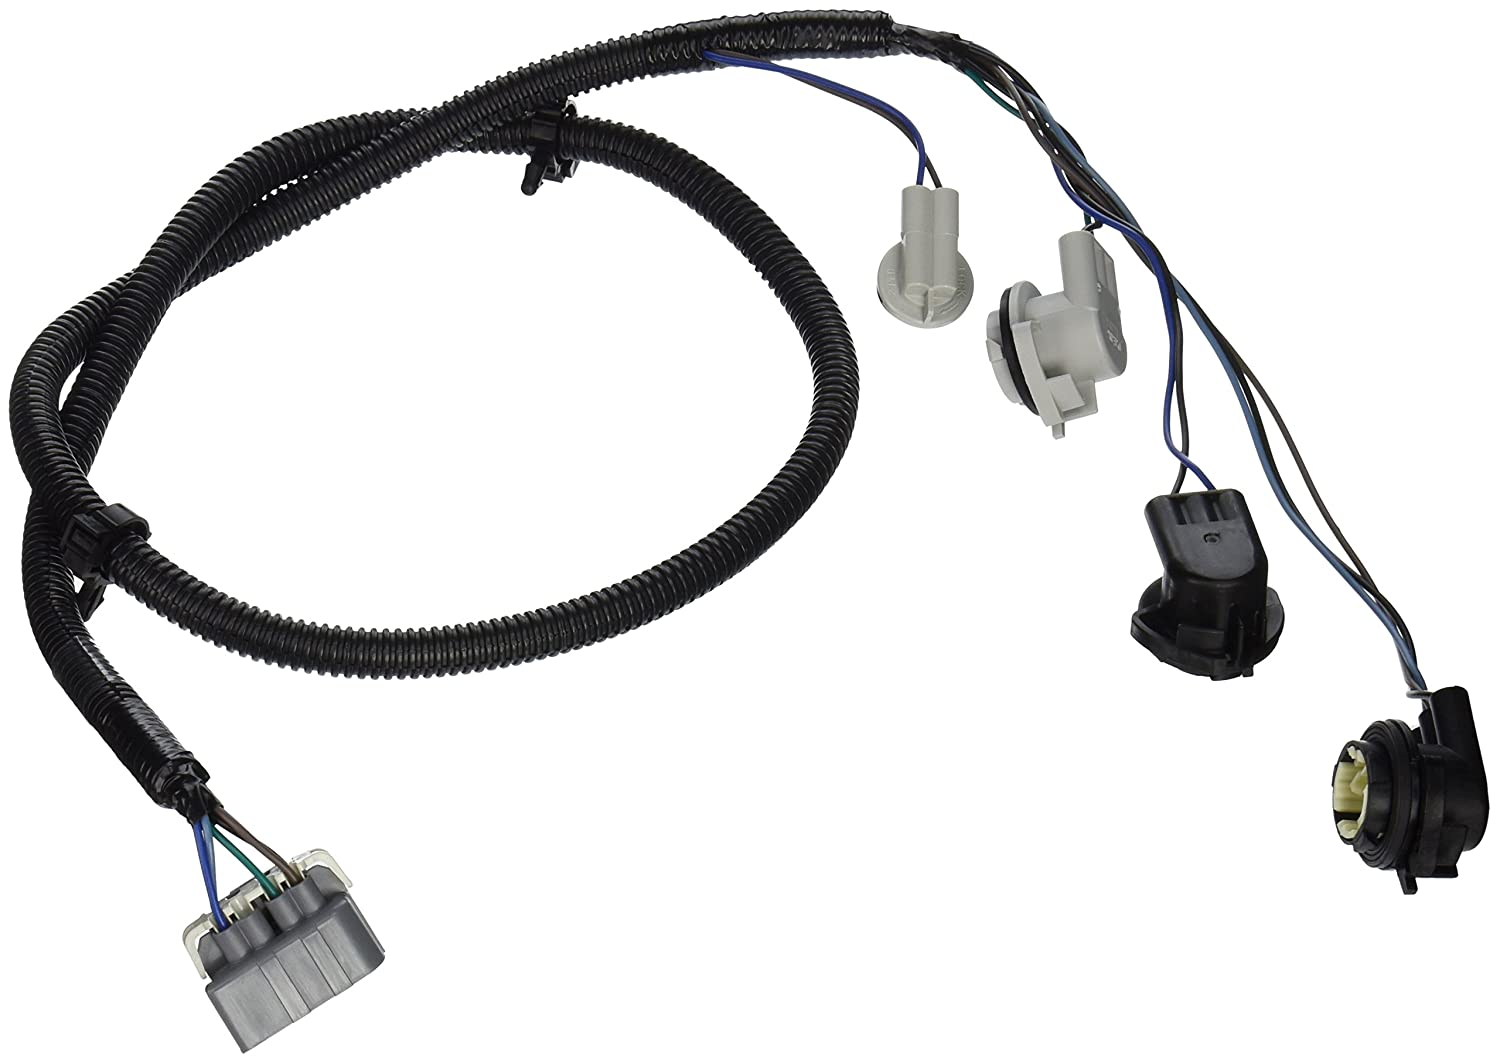 81sfkEXtmvL._SL1500_ amazon com genuine gm 16531401 tail lamp wiring harness automotive GM Turn Signal Wiring at mifinder.co